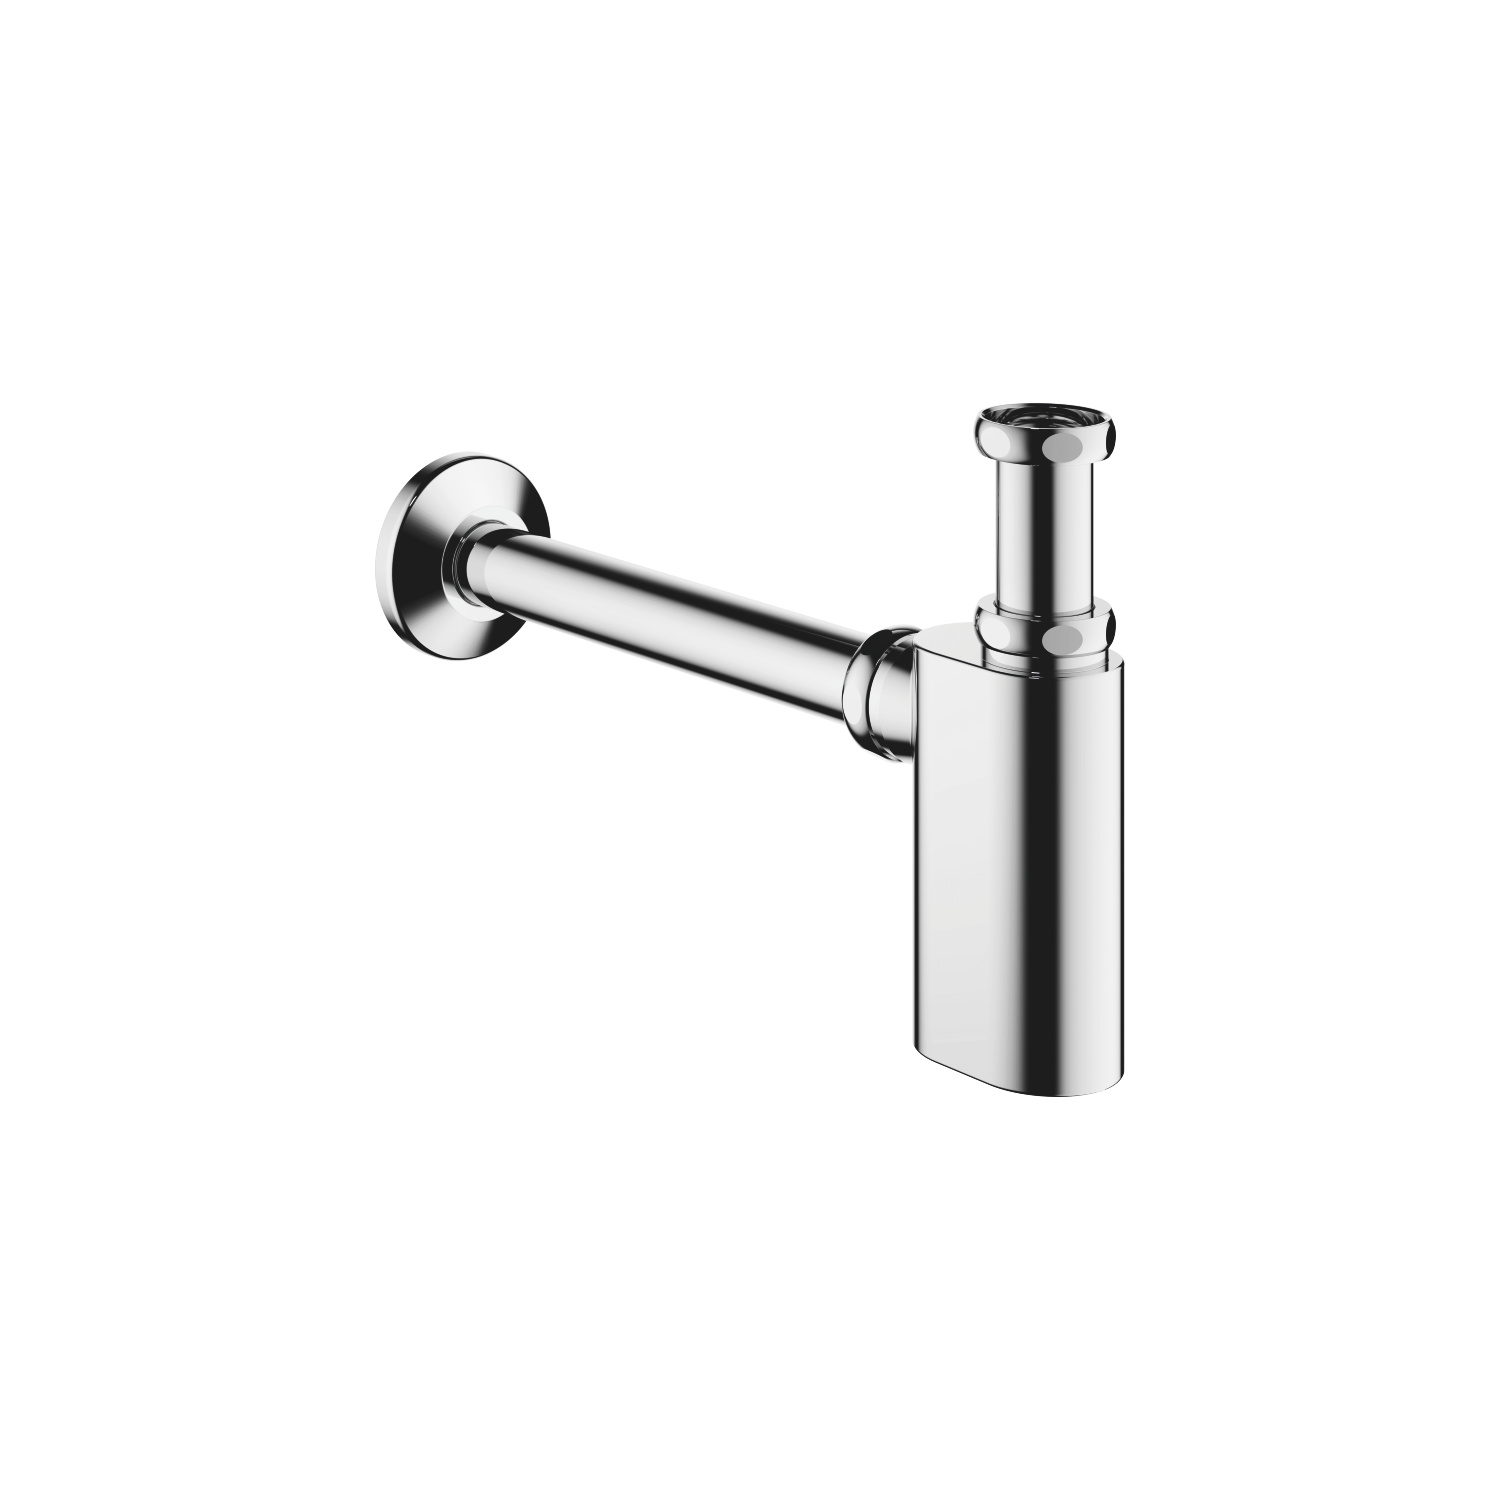 "Siphon for basin 1 1/4"" - polished chrome - 10 040 970-00"